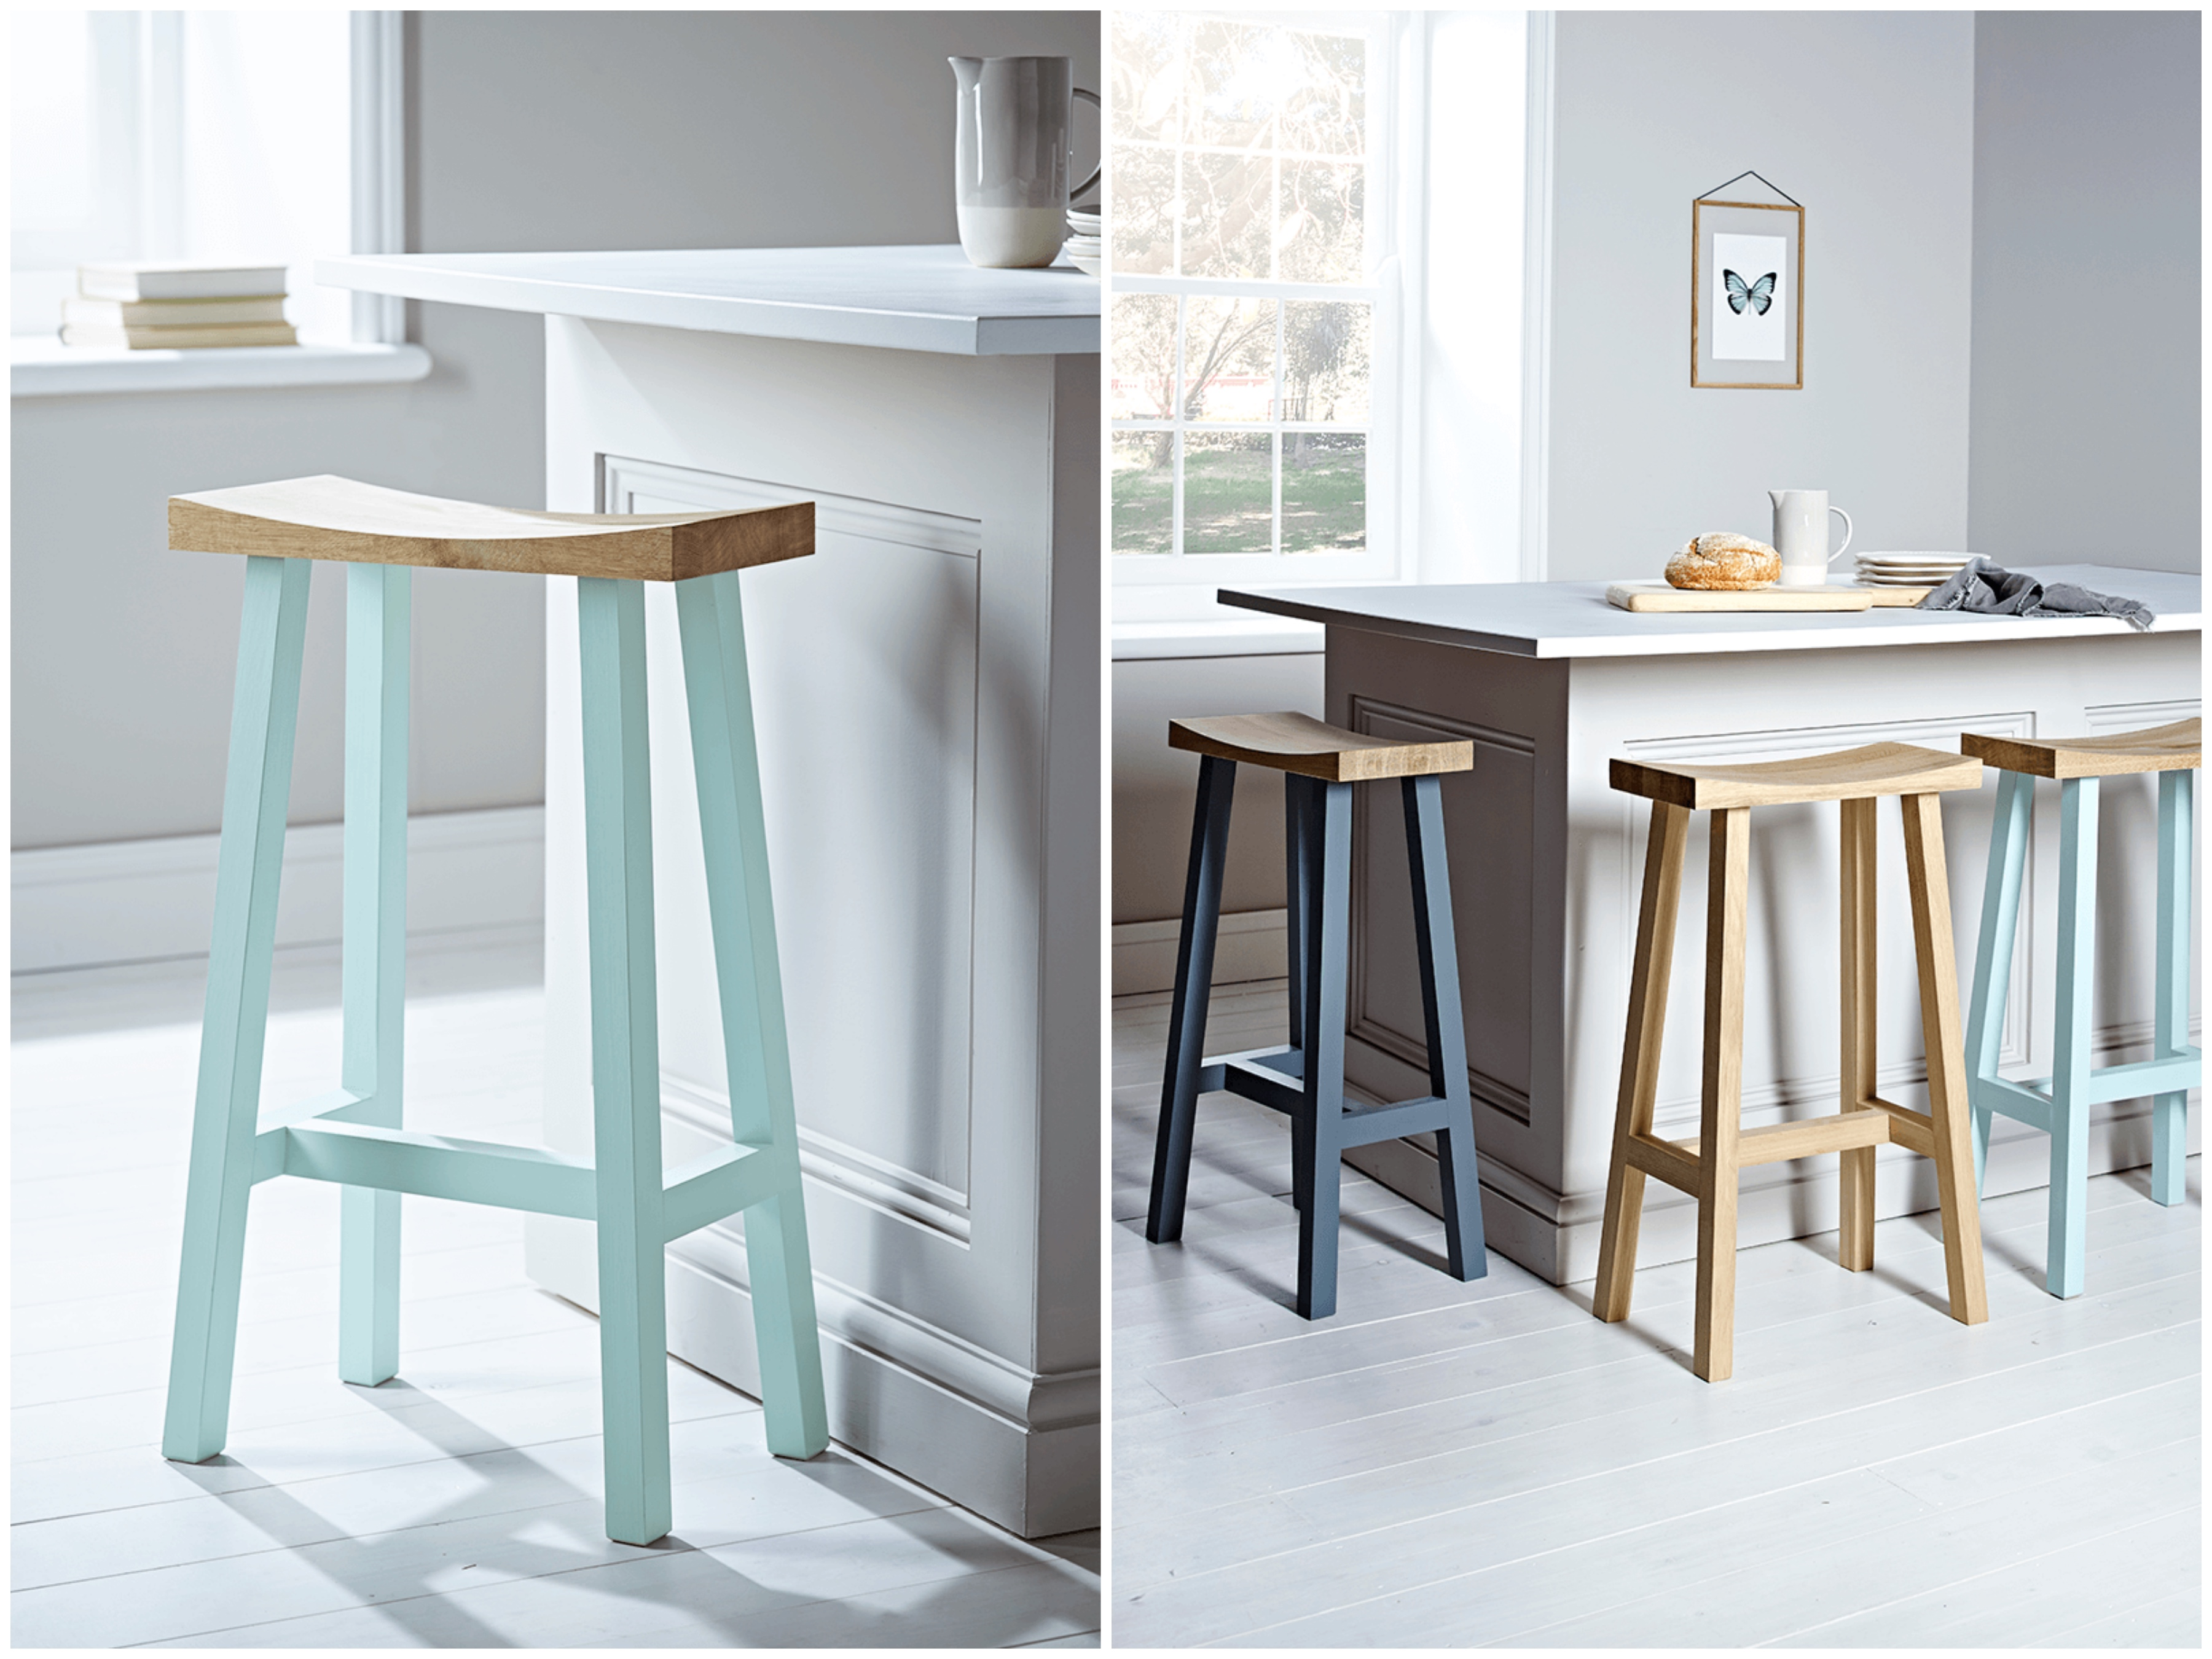 5 of Our Favourite Bar Stools – The Main Company